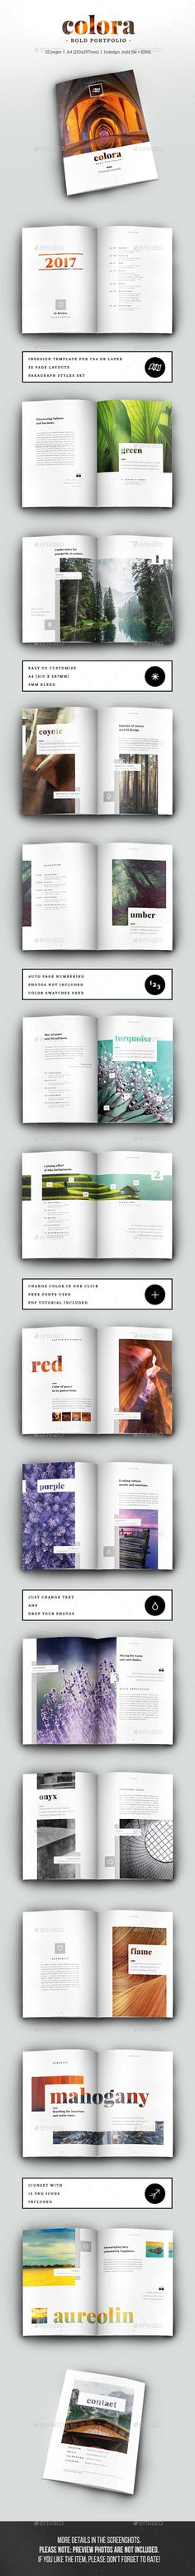 Colora - Bold, Clean Portfolio Brochure Template InDesign INDD